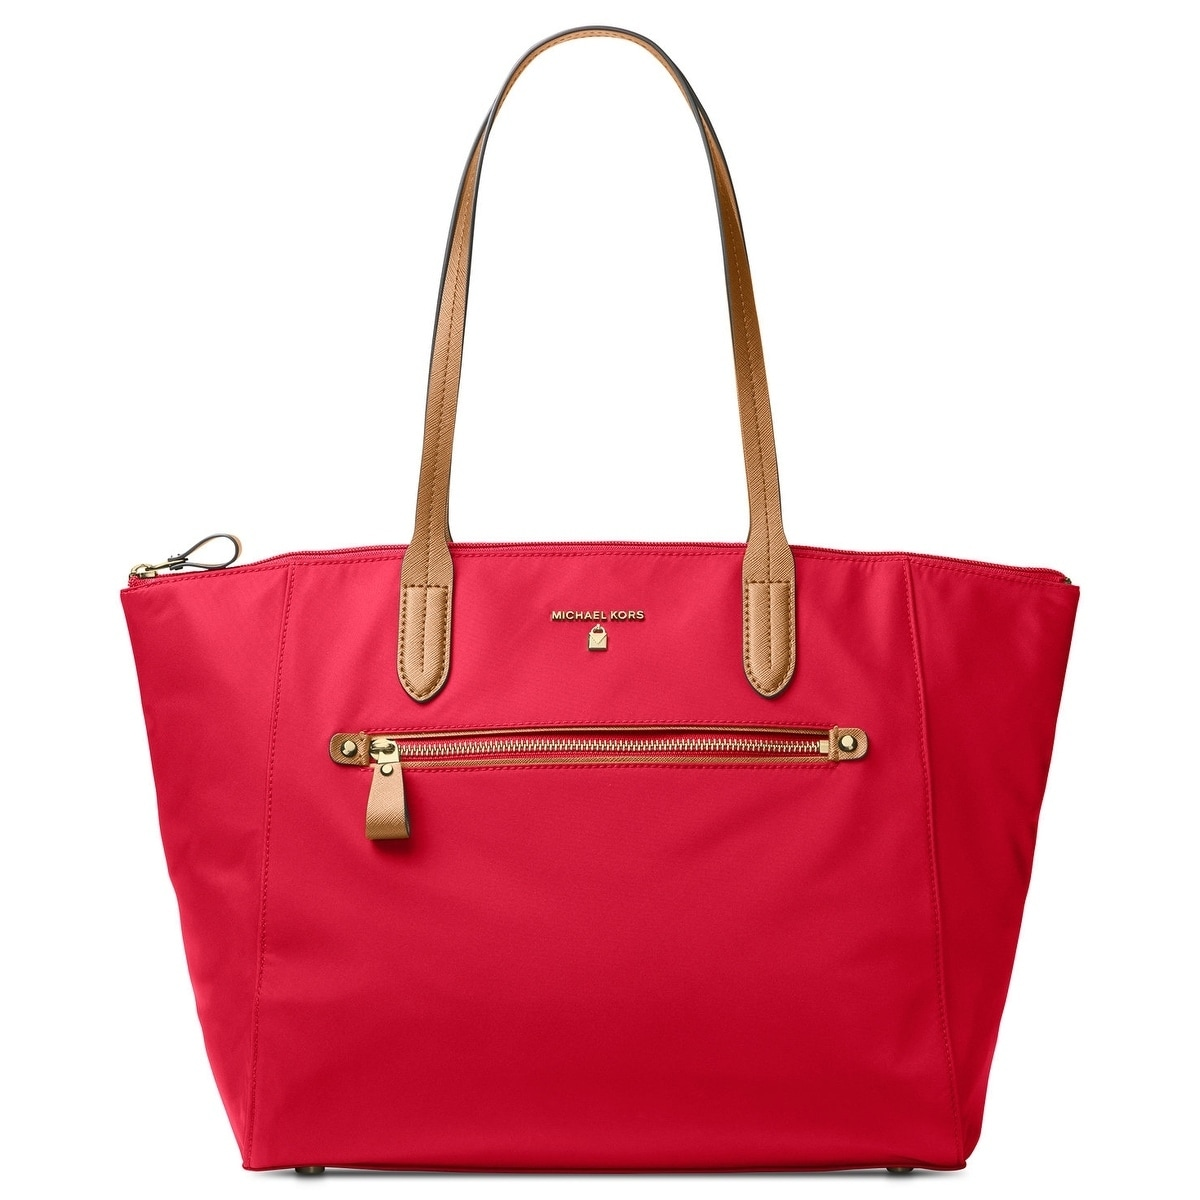 659c5bfd461 Designer Handbags   Find Great Designer Store Deals Shopping at  Overstock.com